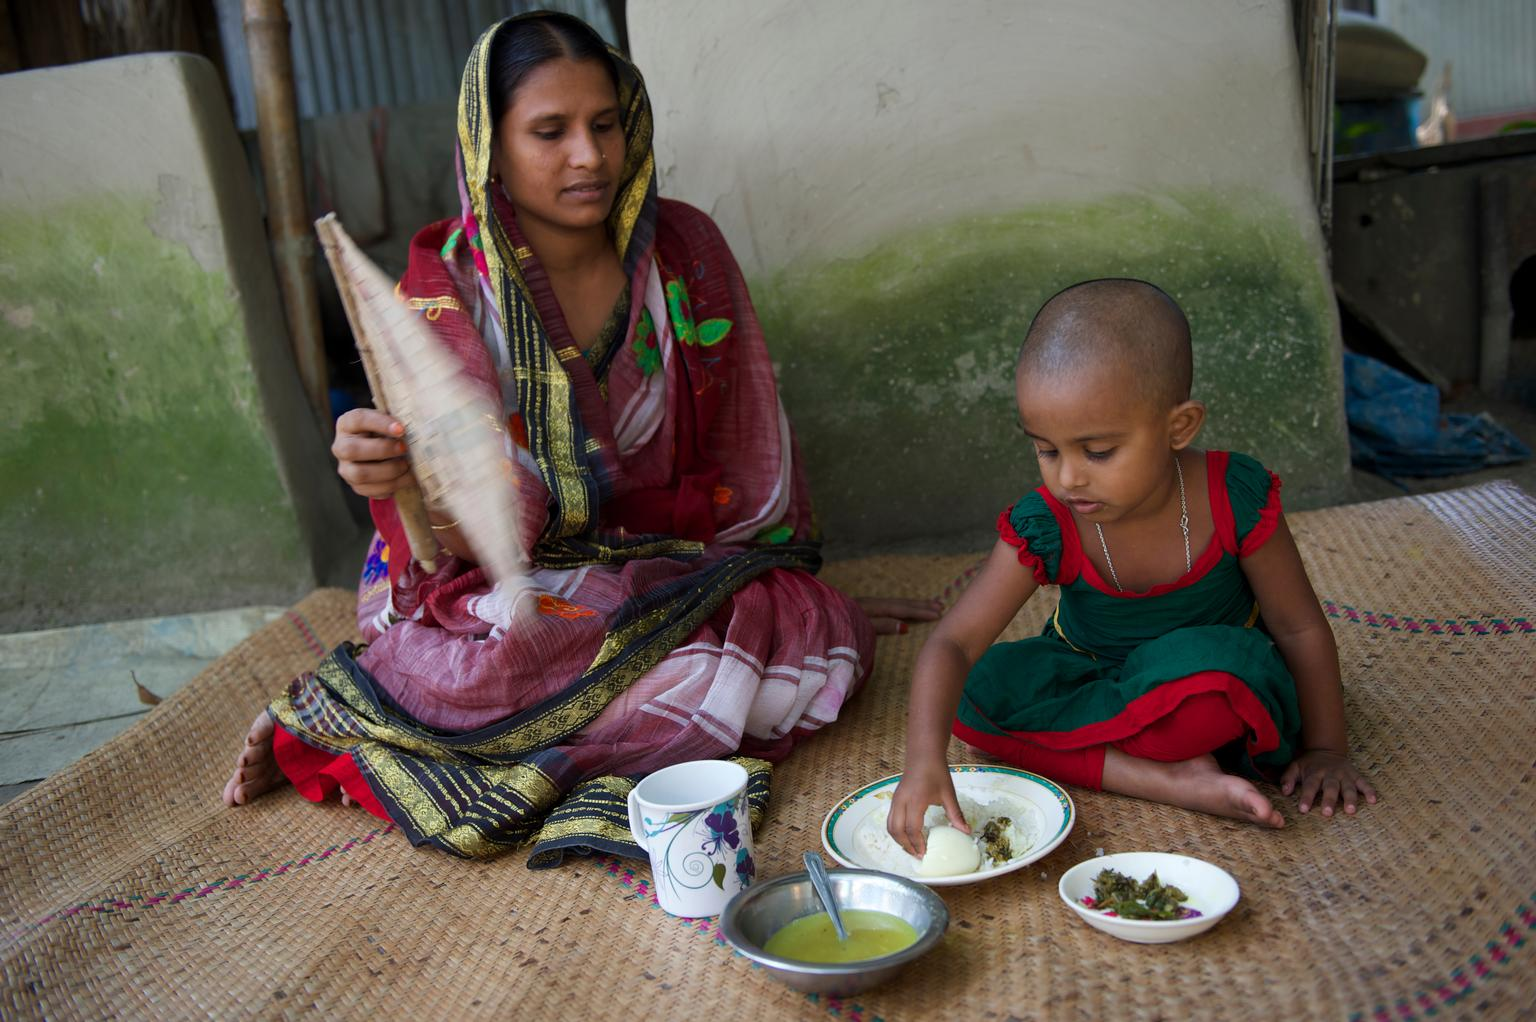 Nishimoni, 3, eats a meal while her mother, Lovely, sits next to her, at home in the village of Char Dhanata, Sharisha Bari Upazila, Jamalpur District, Dhaka Division. When the family began participating in a project that is part of the UNICEF/EU-supported nutrition security programme, Nishimoni was diagnosed with malnutrition. Lovely began receiving packets of micronutrient powder (MNP) from a local clinic; sprinkling the powder on Nishimoni's food helped to improve her nutritional status.  © UNICEF/NYHQ2014-3269/Noorani